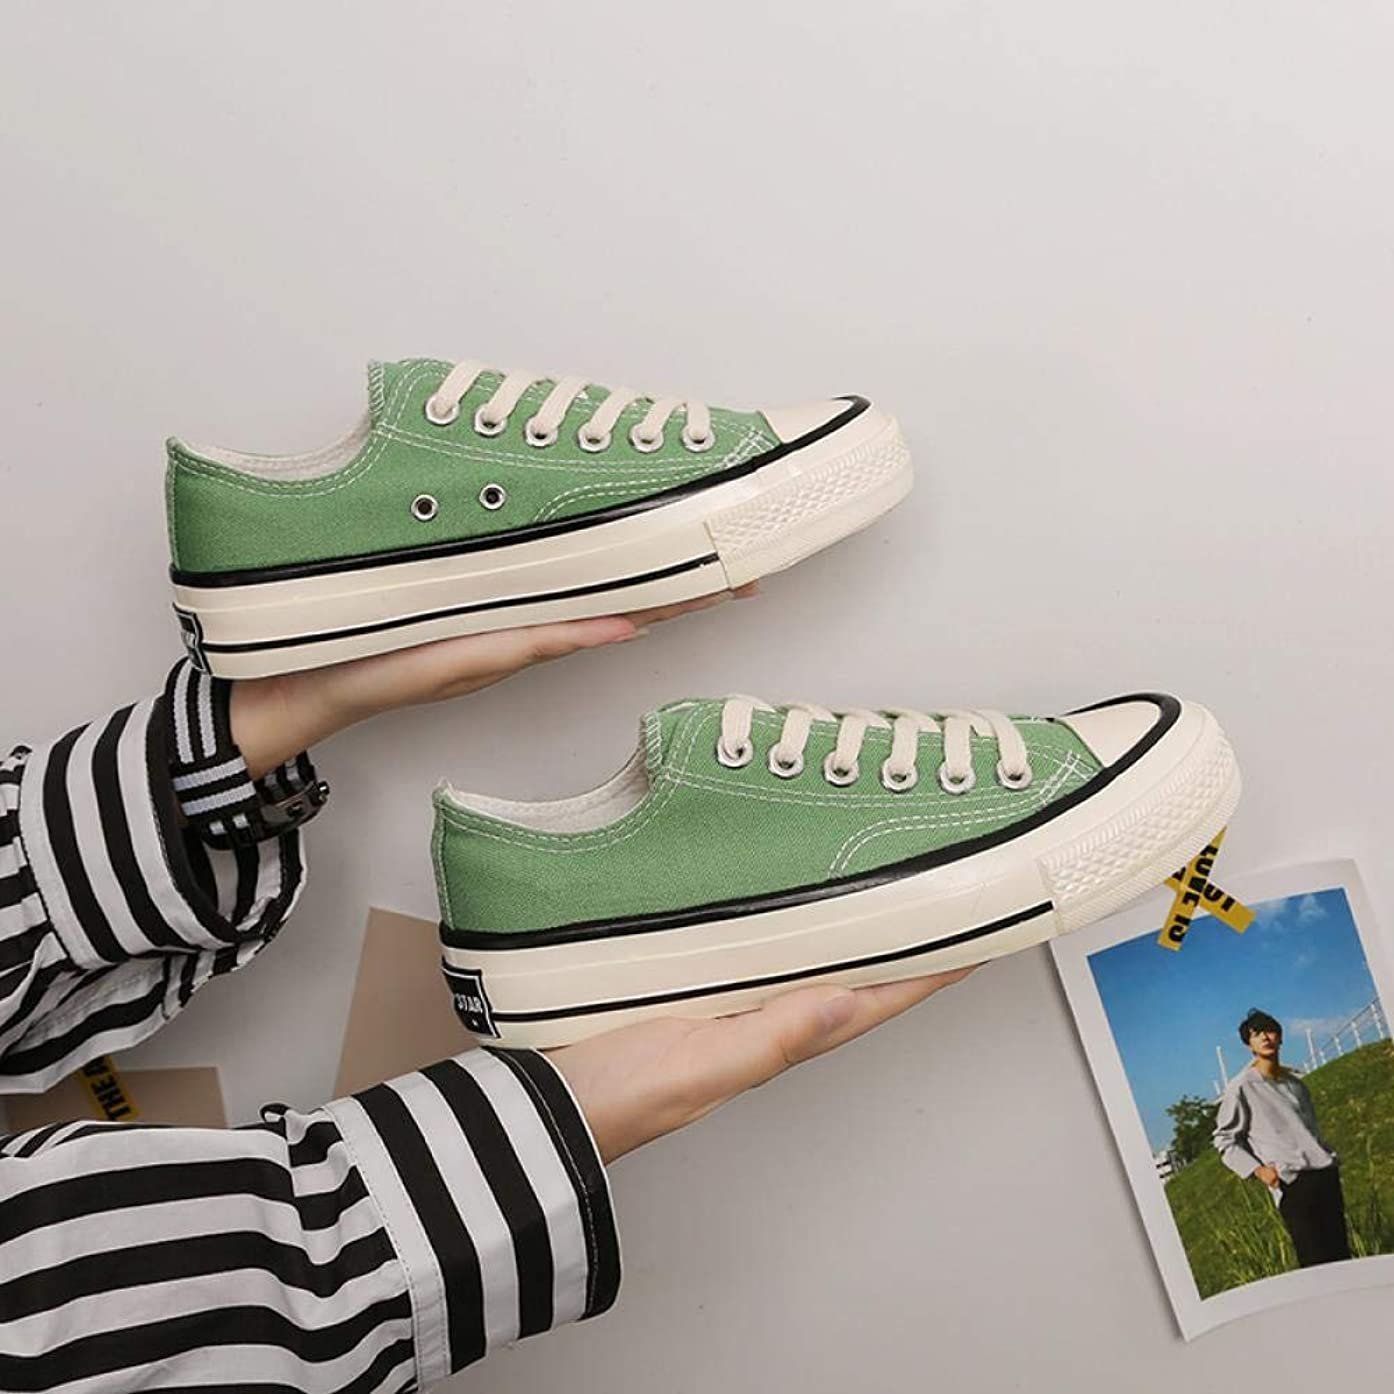 svthmogsx s Engraved Canvas Shoes Female Korean Version of The Couple Shoes Students Low to Help Men and Women, Mint Green, 39 (Male)